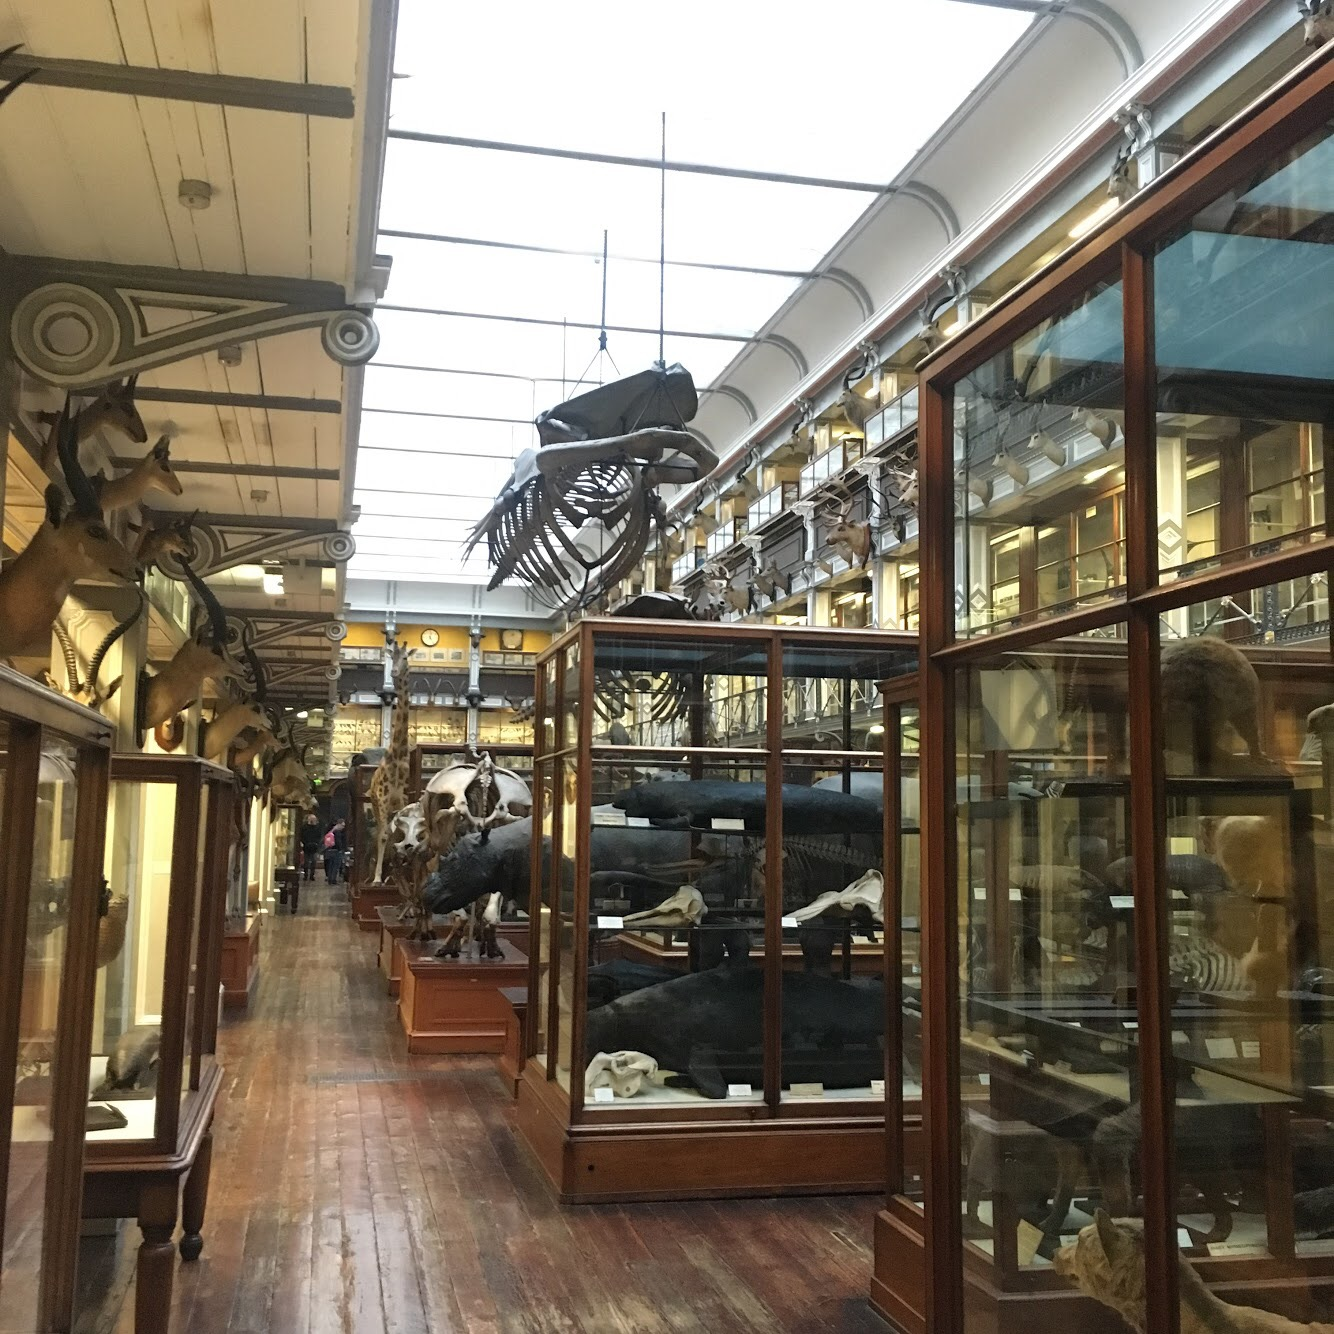 National History Museum, Dublin, Ireland. Also known as the dead zoo. Penny Dreadful was filmed here.